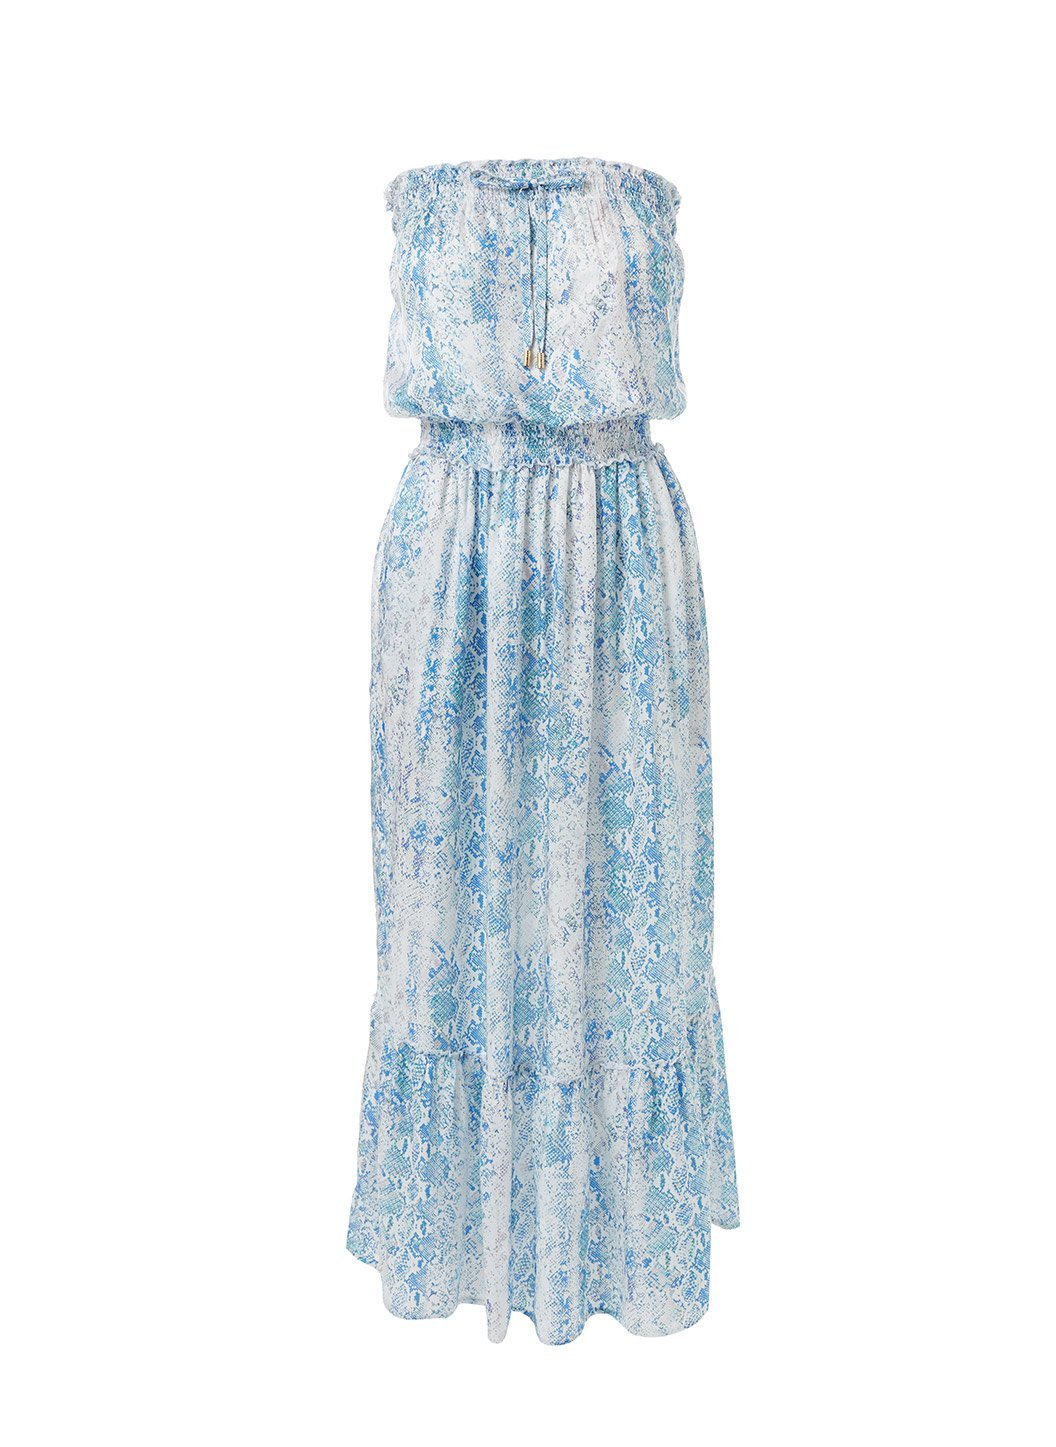 rachel serpente bandeau silk maxi dress 2019